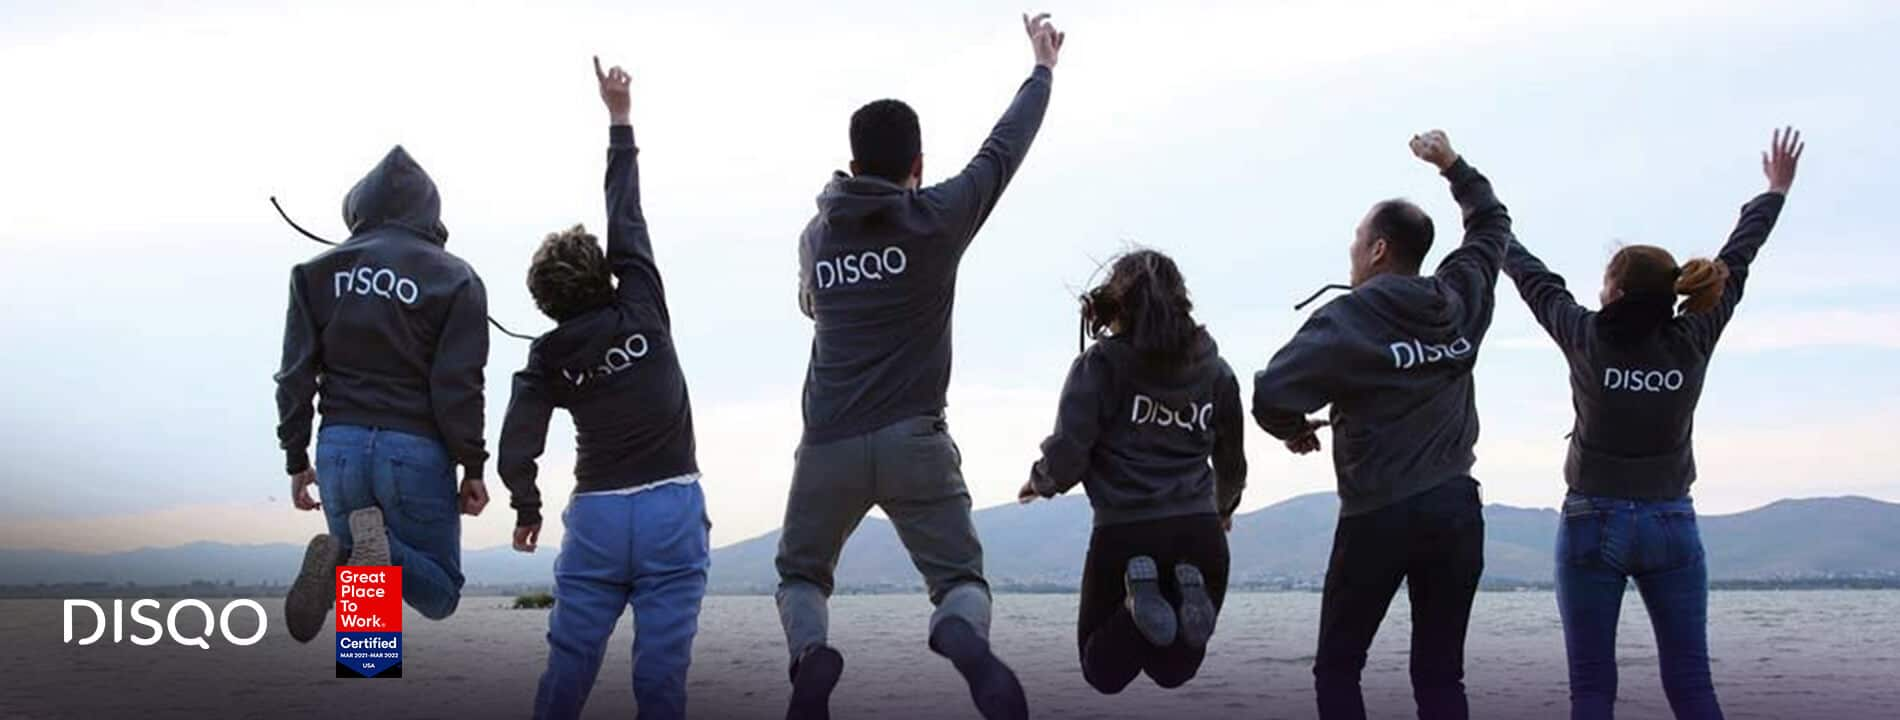 DISQO Certified as Great Place to Work